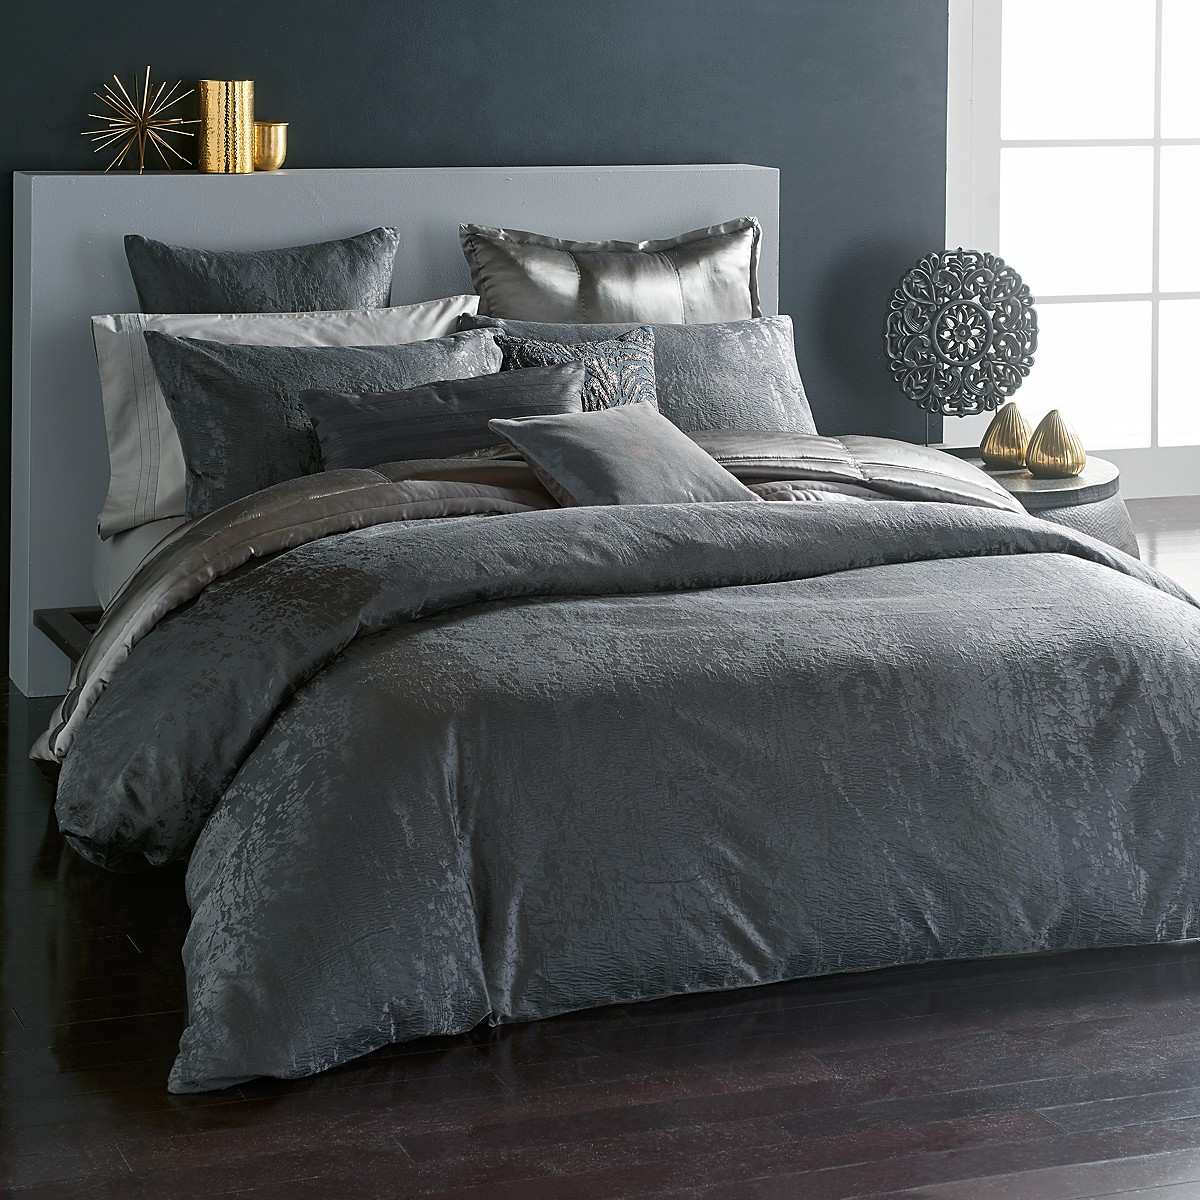 comp cover resmode queen shop duvet wid op oake exclusive pdpimgshortdescription usm bloomingdale linen fpx layer s qlt sharpen tif full product